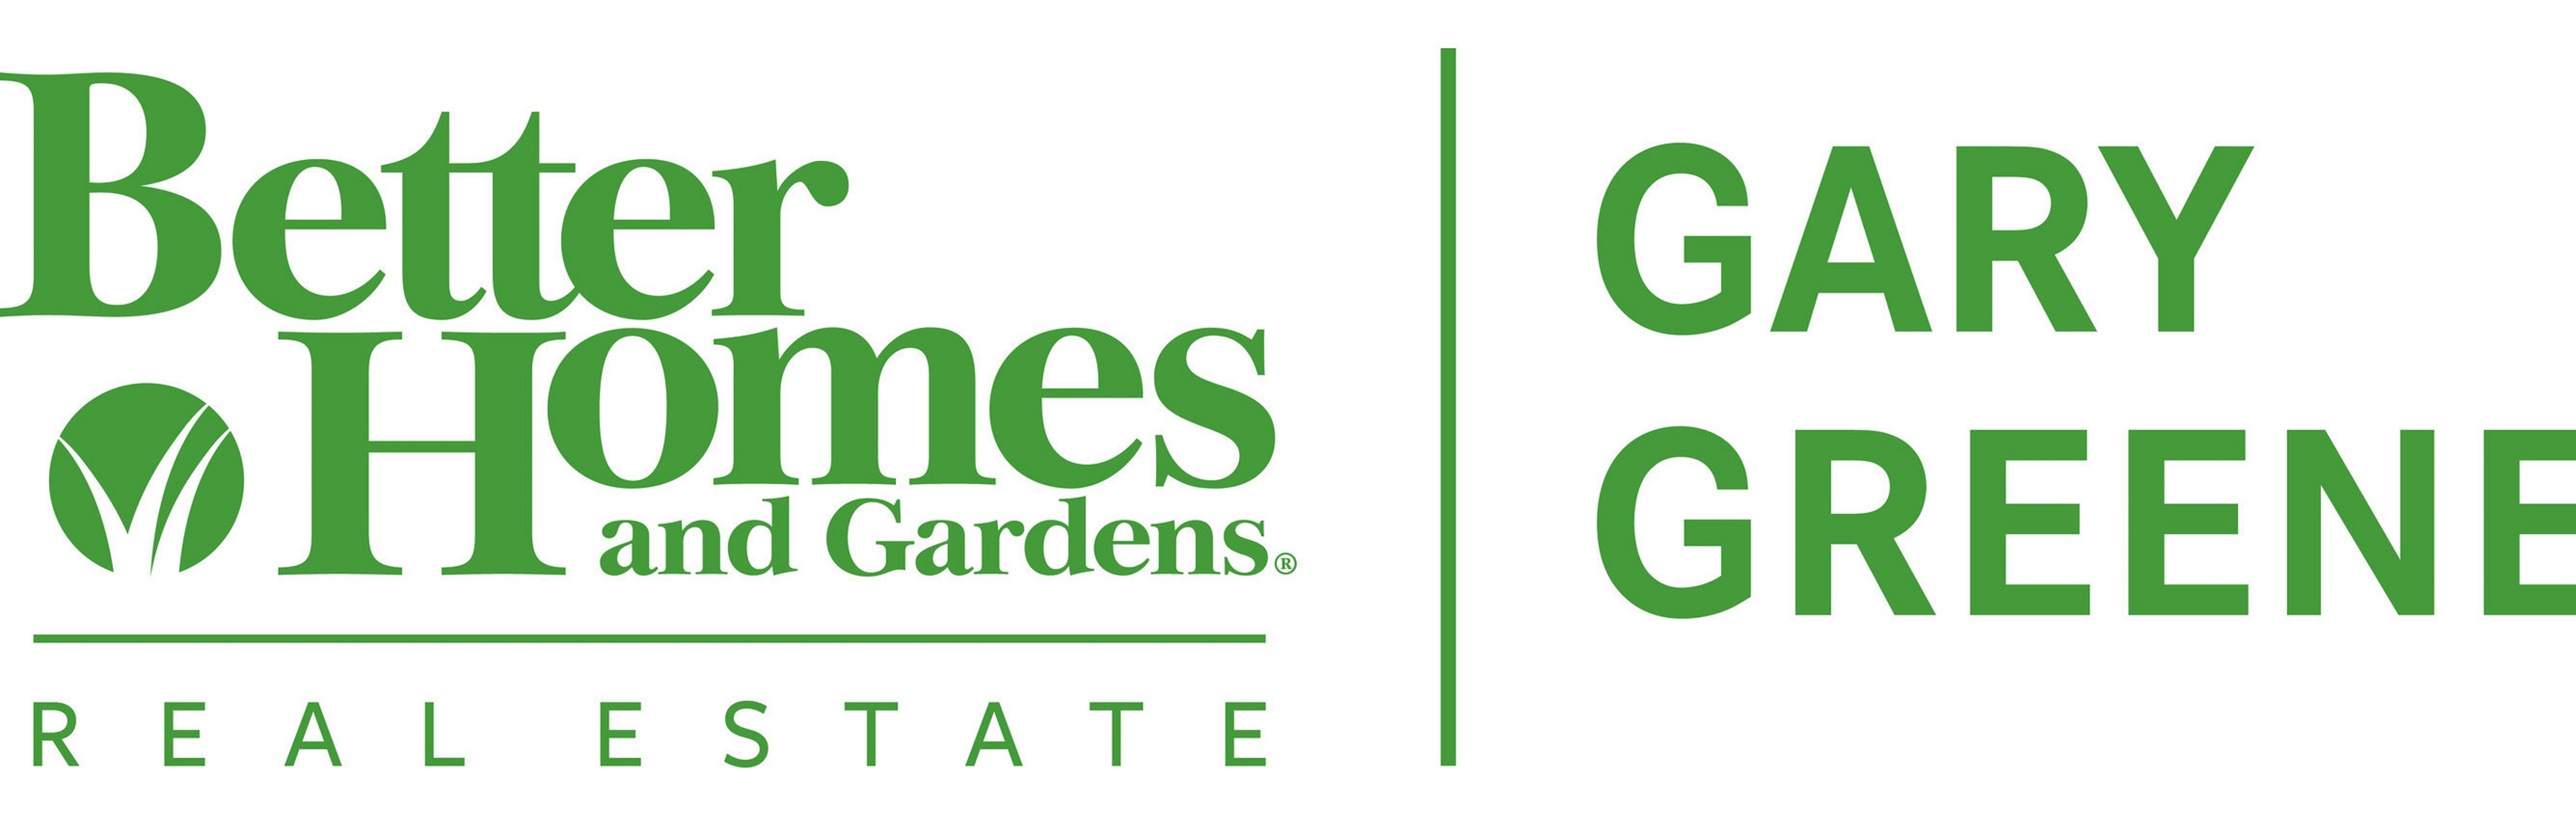 Better Homes and Gardens Real Estate Gary Greene Announces Merger ...